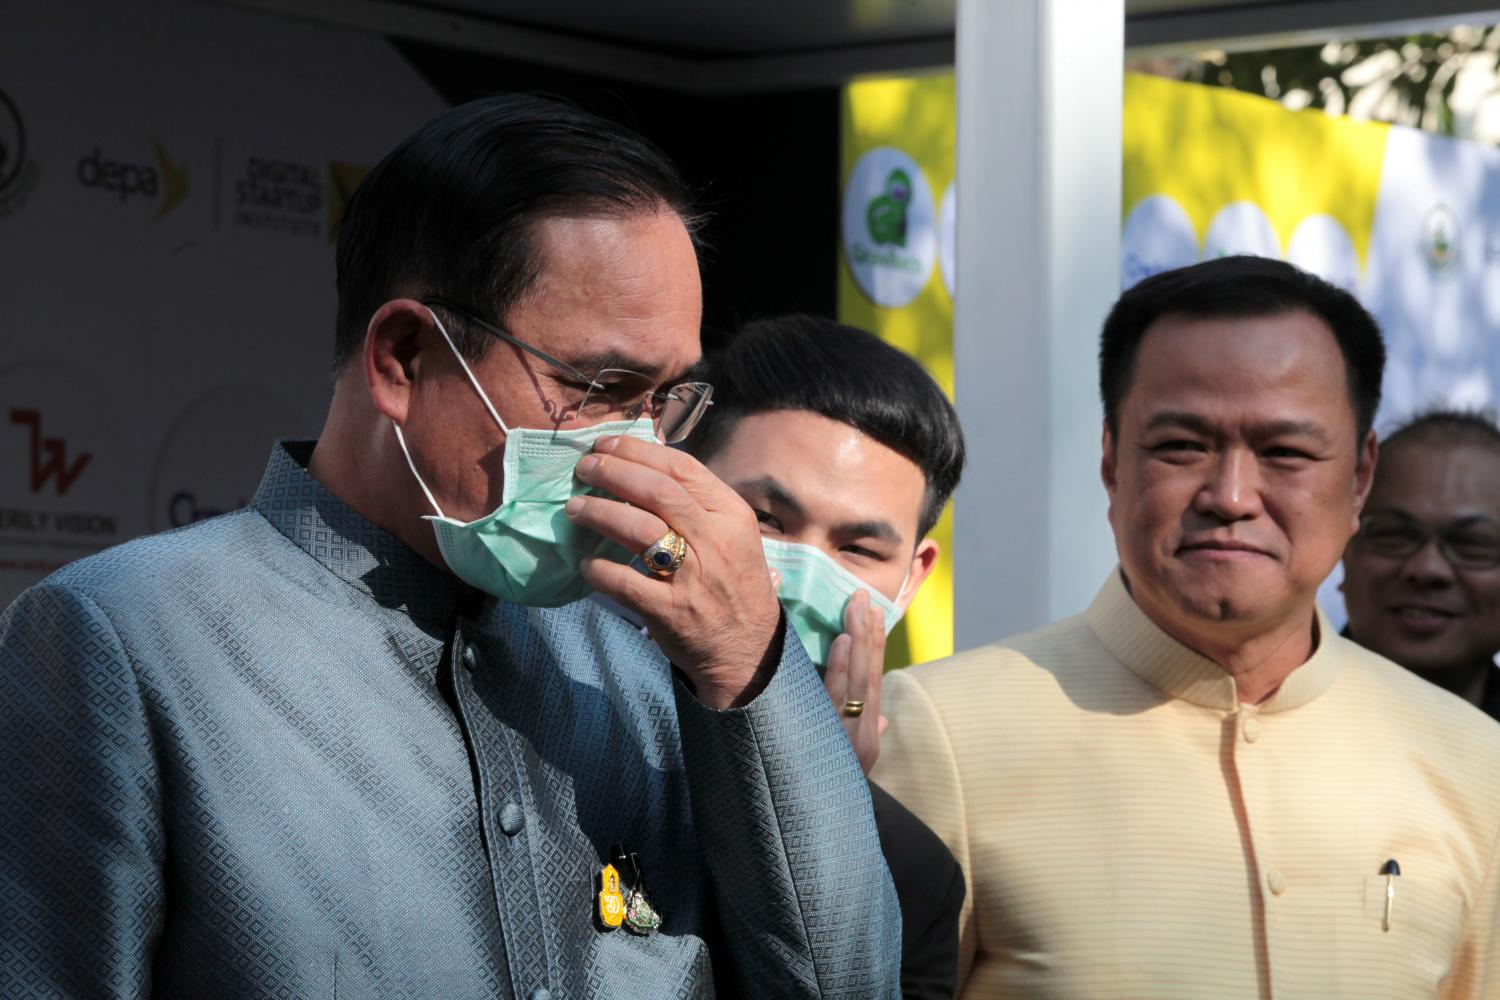 Prime Minister Prayut Chan-o-cha, left, demonstrates how to wear a face mask as a guard against the coronovirus and PM2.5 dust at Government House last week as Public Health Minister Anutin Charnvirakul, right, looks on. CHANAT KATANYU